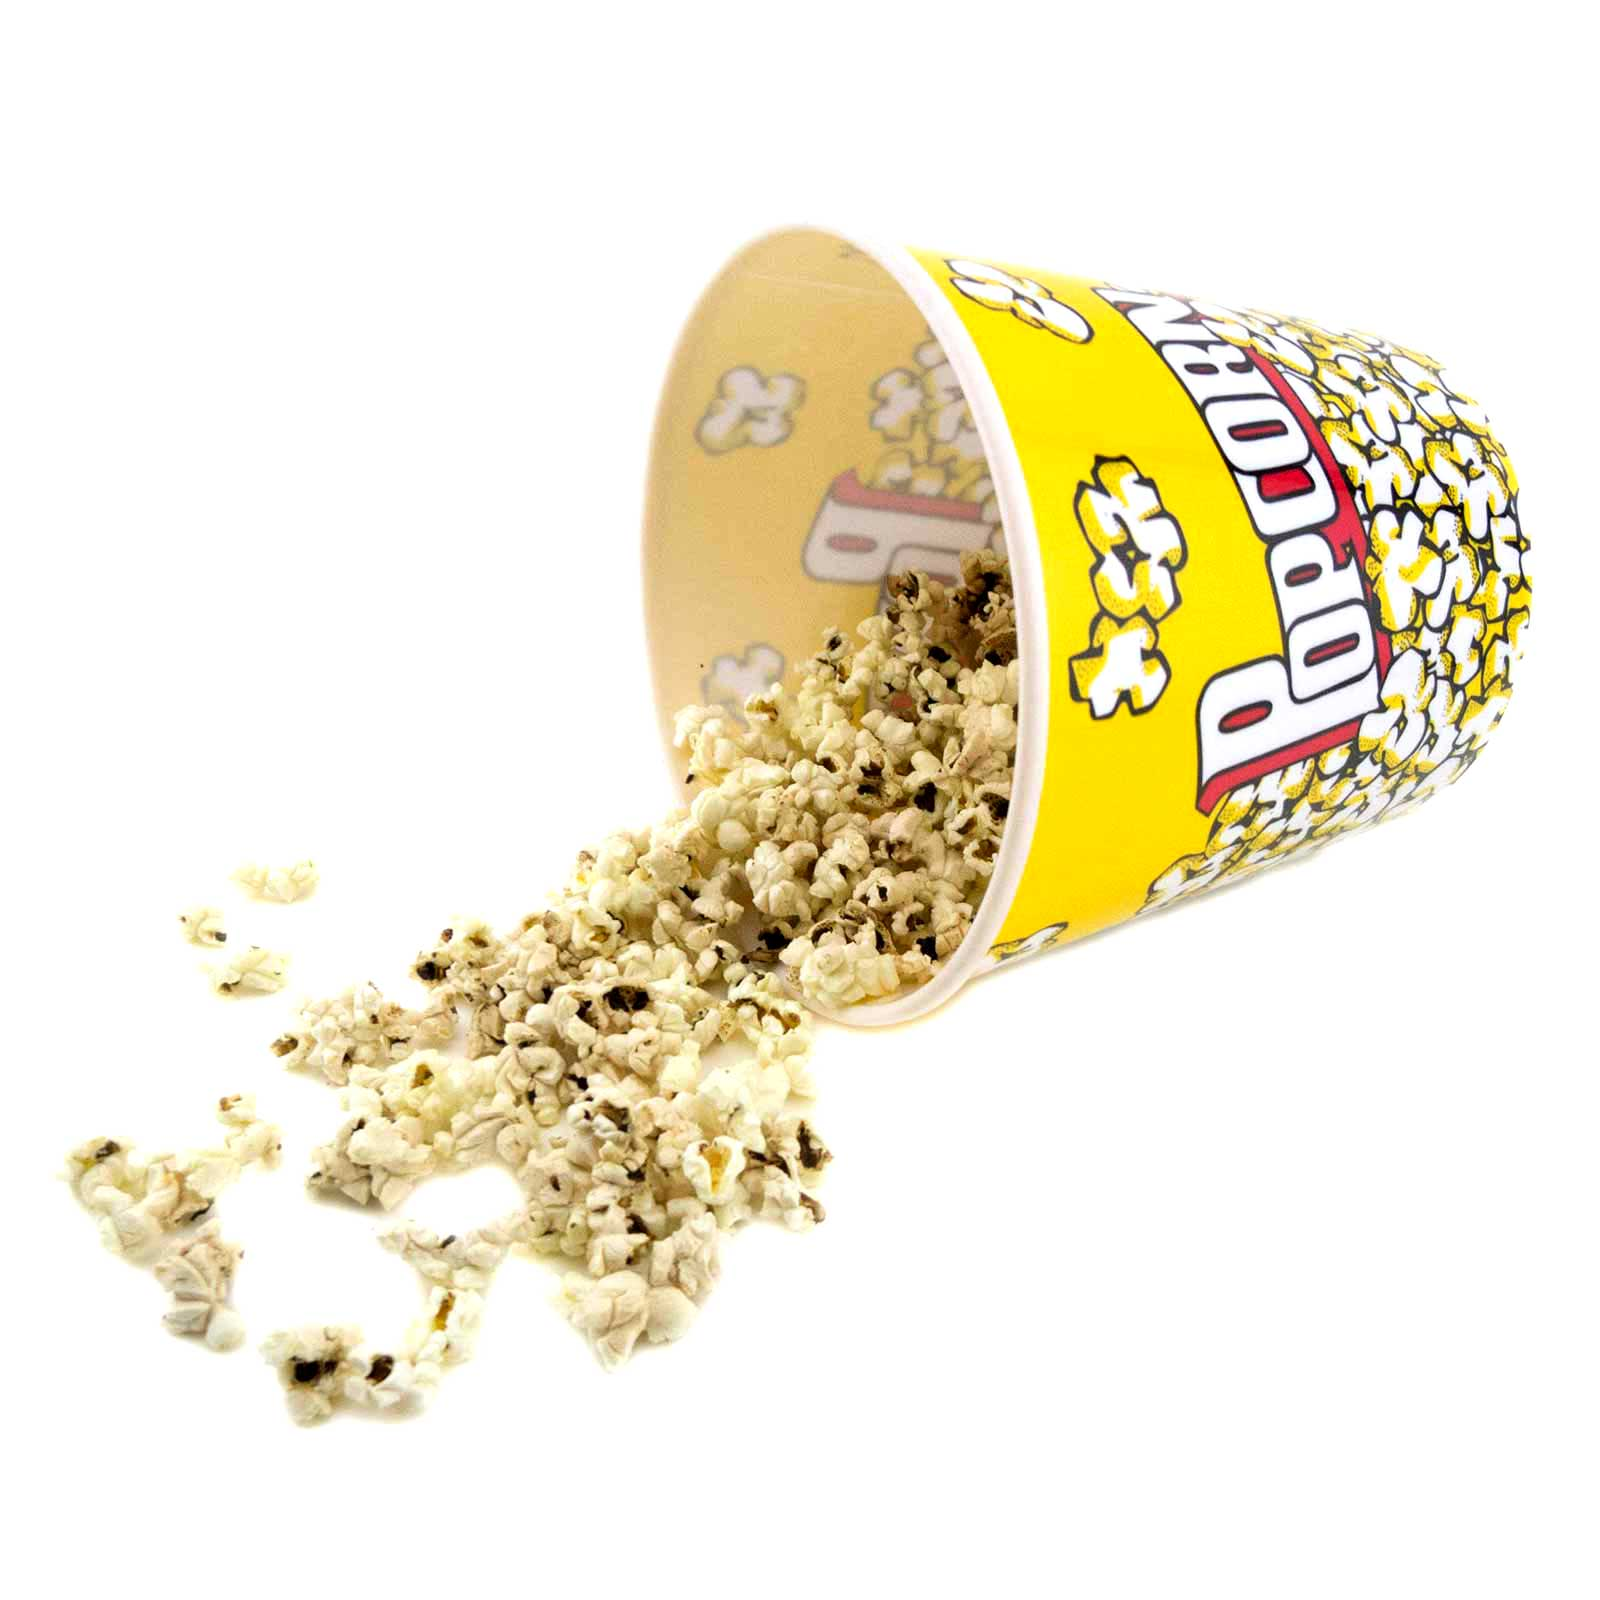 Large Popcorn Tubs Plastic Movie Container Theater Style